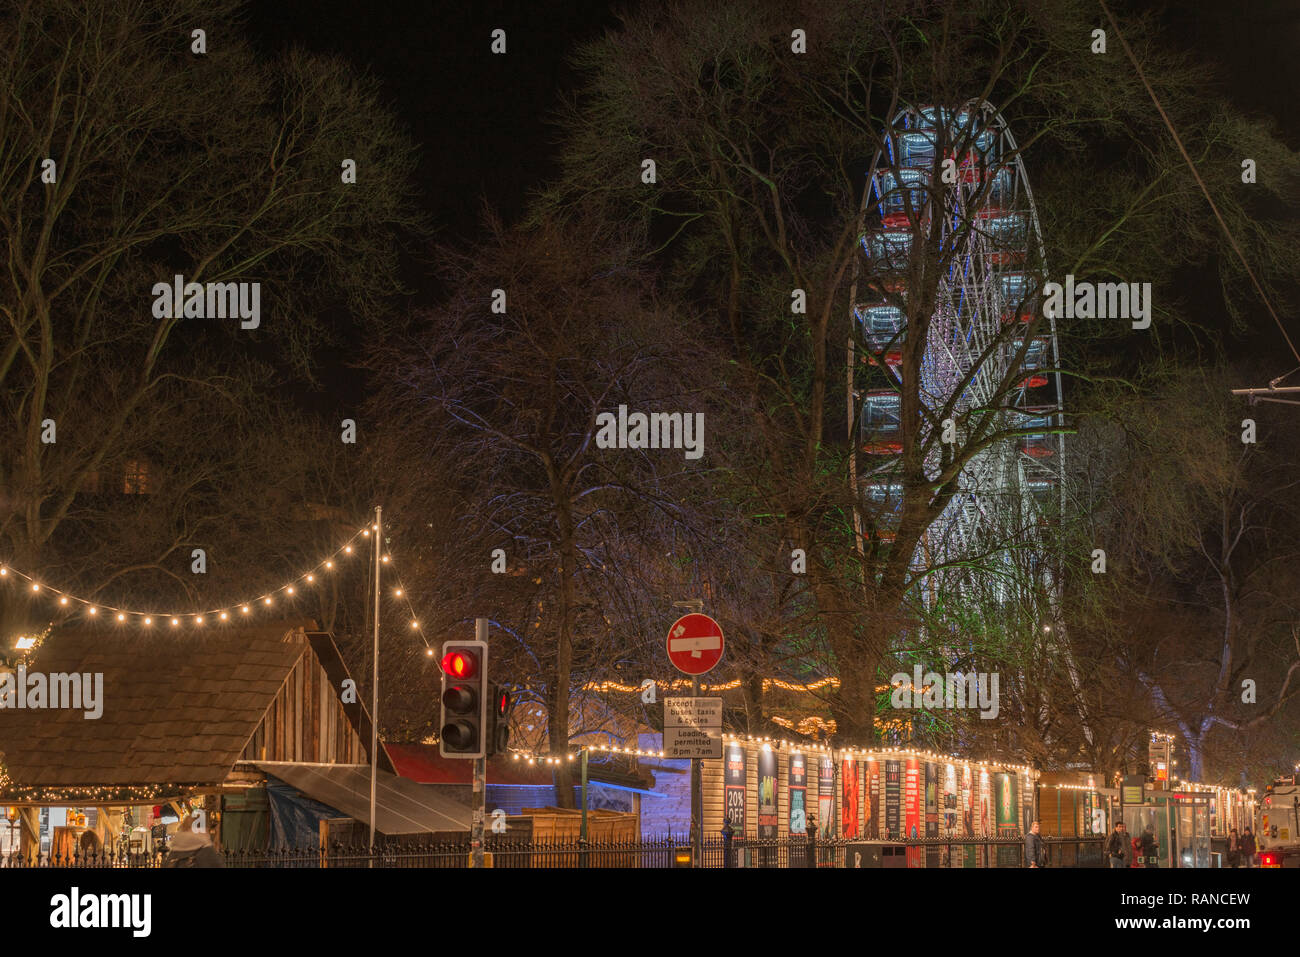 Edinburgh's 2018 Xmas market and fair is a popular attraction in the run up to Christmas - Stock Image